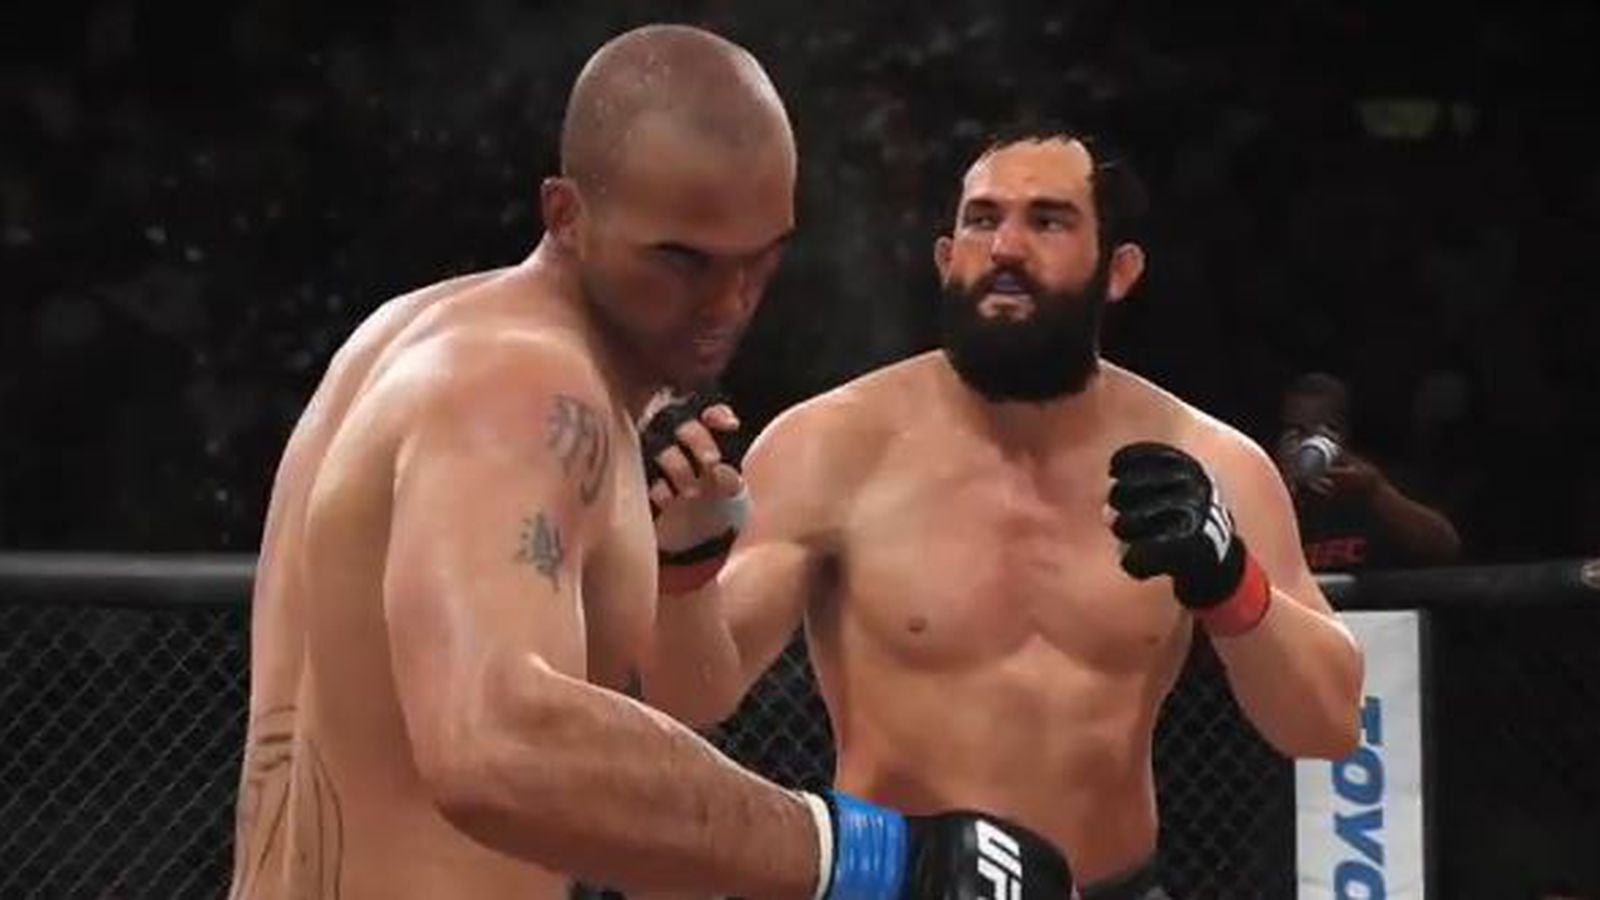 ea sports ufc matchmaking Metacritic game reviews, ea sports ufc for playstation 4, ufc ultimate fighting championship is a mixed martial arts fighting game that uses the new ea sports ignite engine.